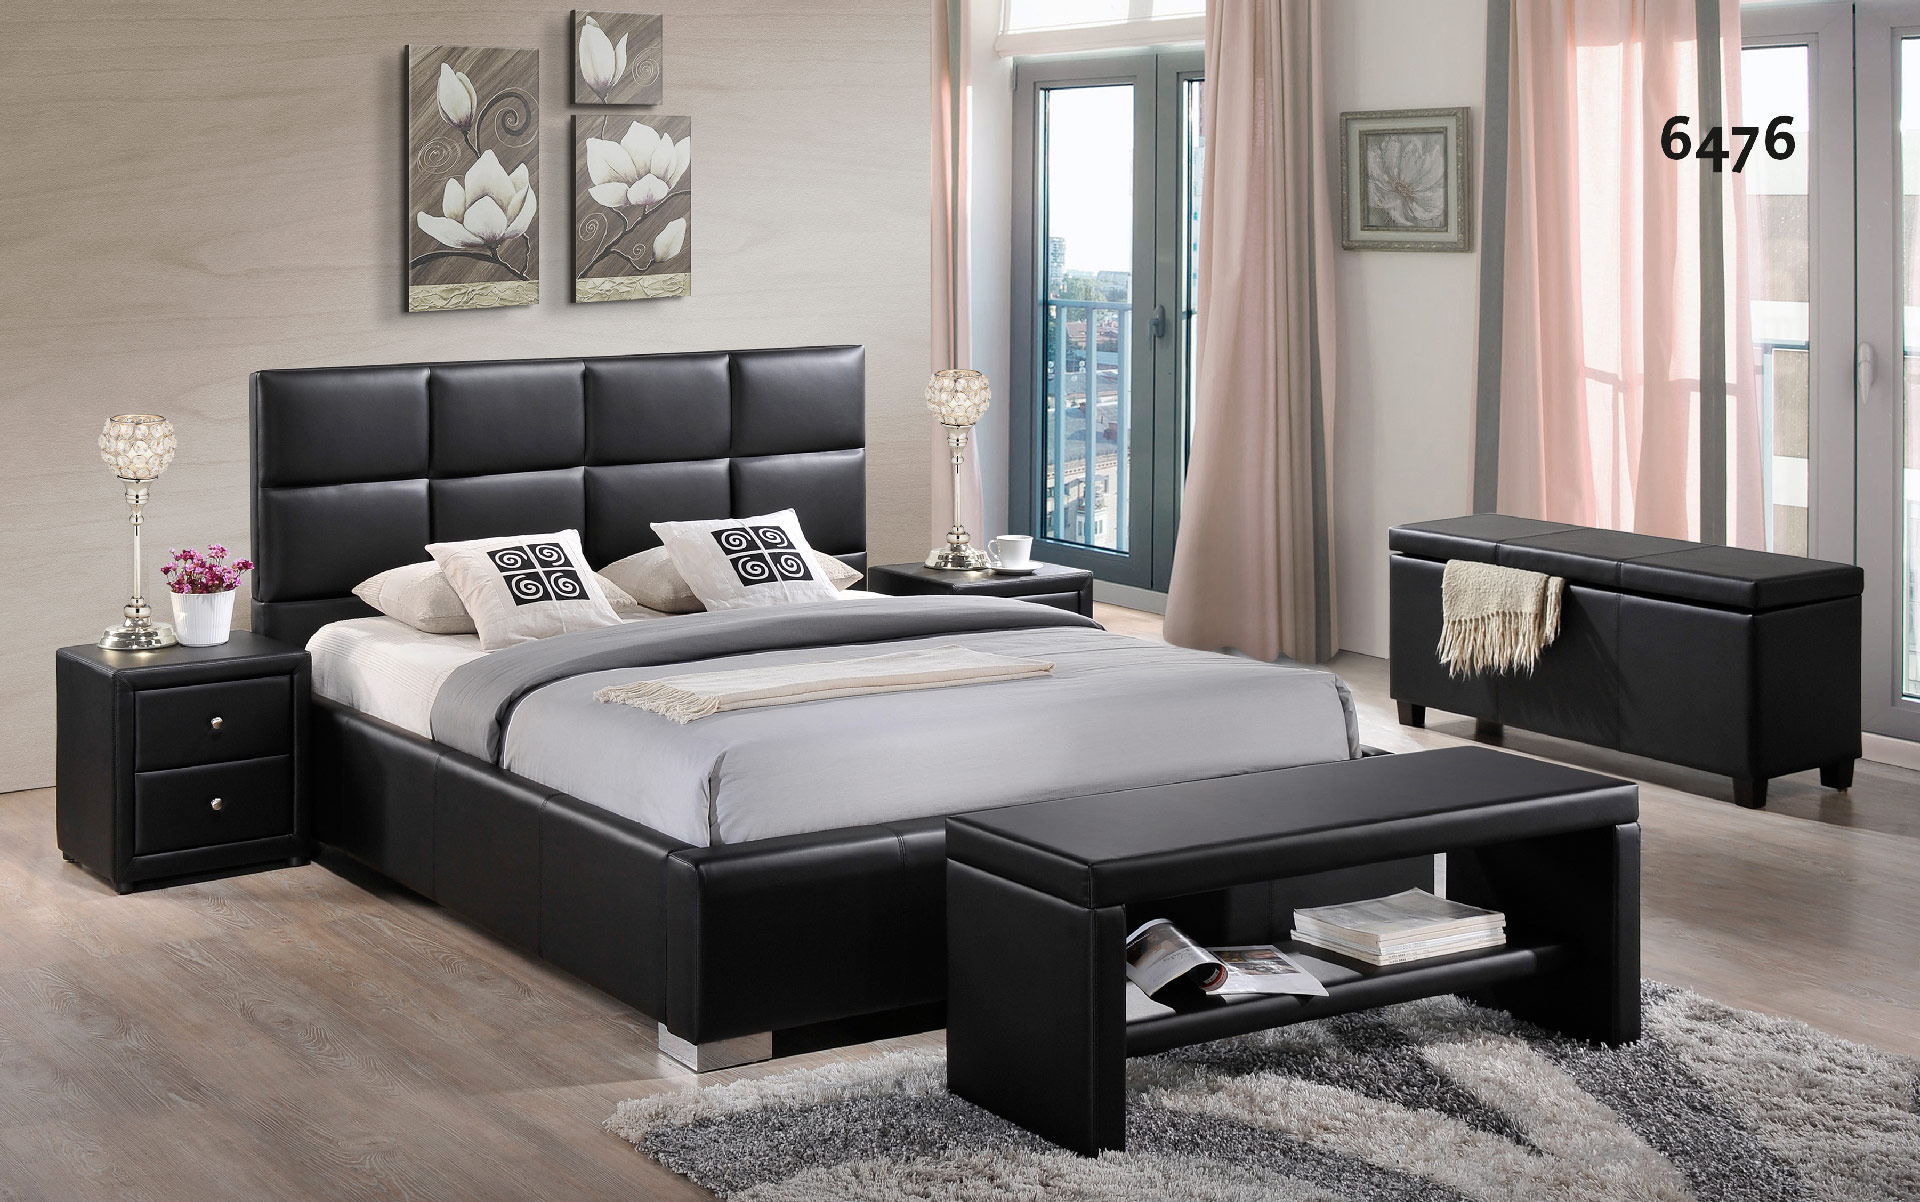 frais chambres a coucher. Black Bedroom Furniture Sets. Home Design Ideas